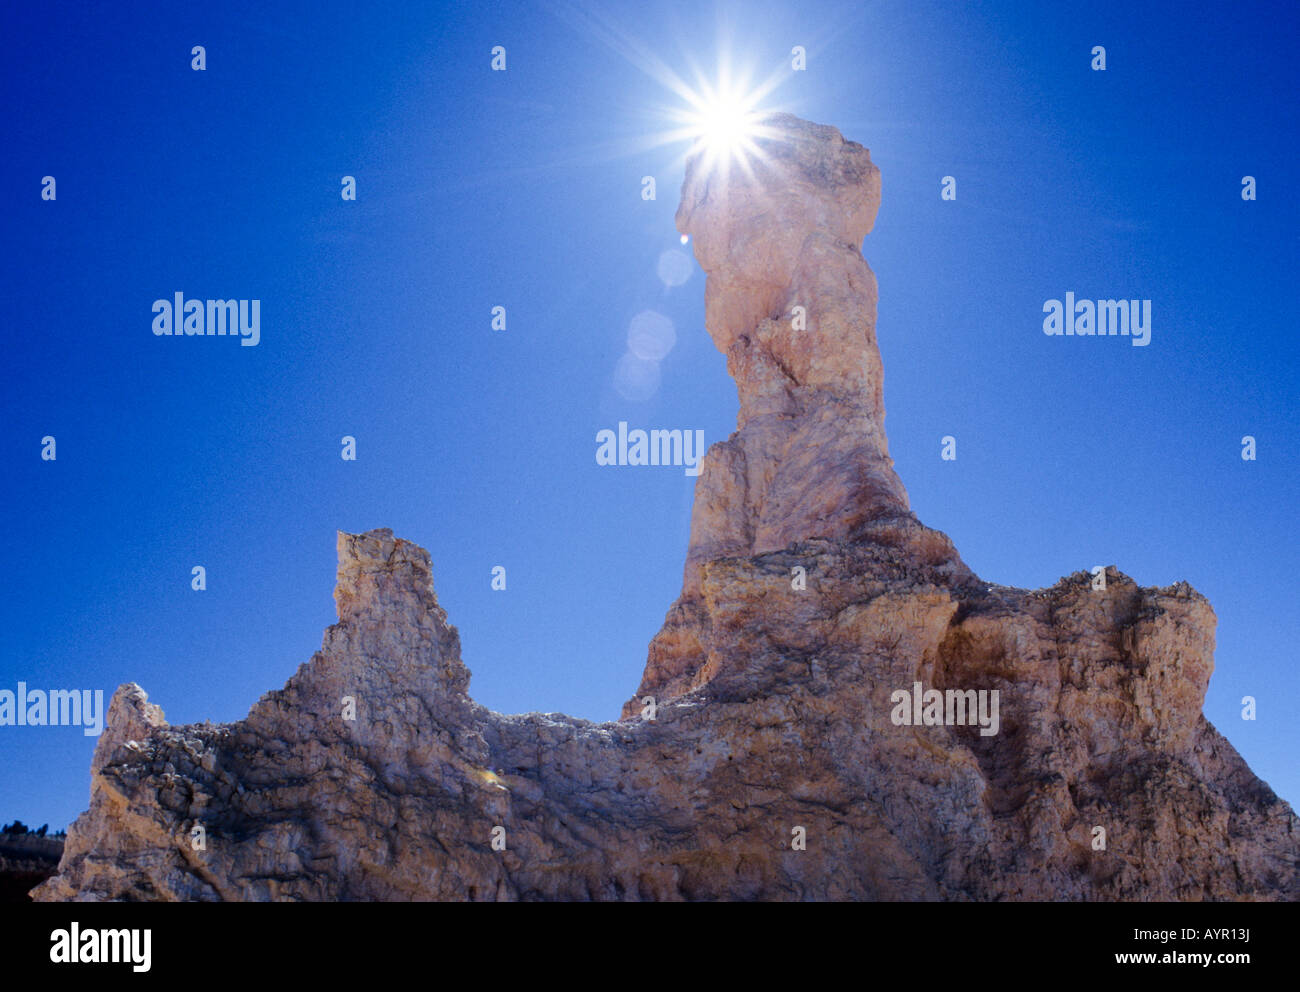 Hoodoos (thin rock spires) in the morning sun, Bryce Canyon National Park, Utah, USA - Stock Image